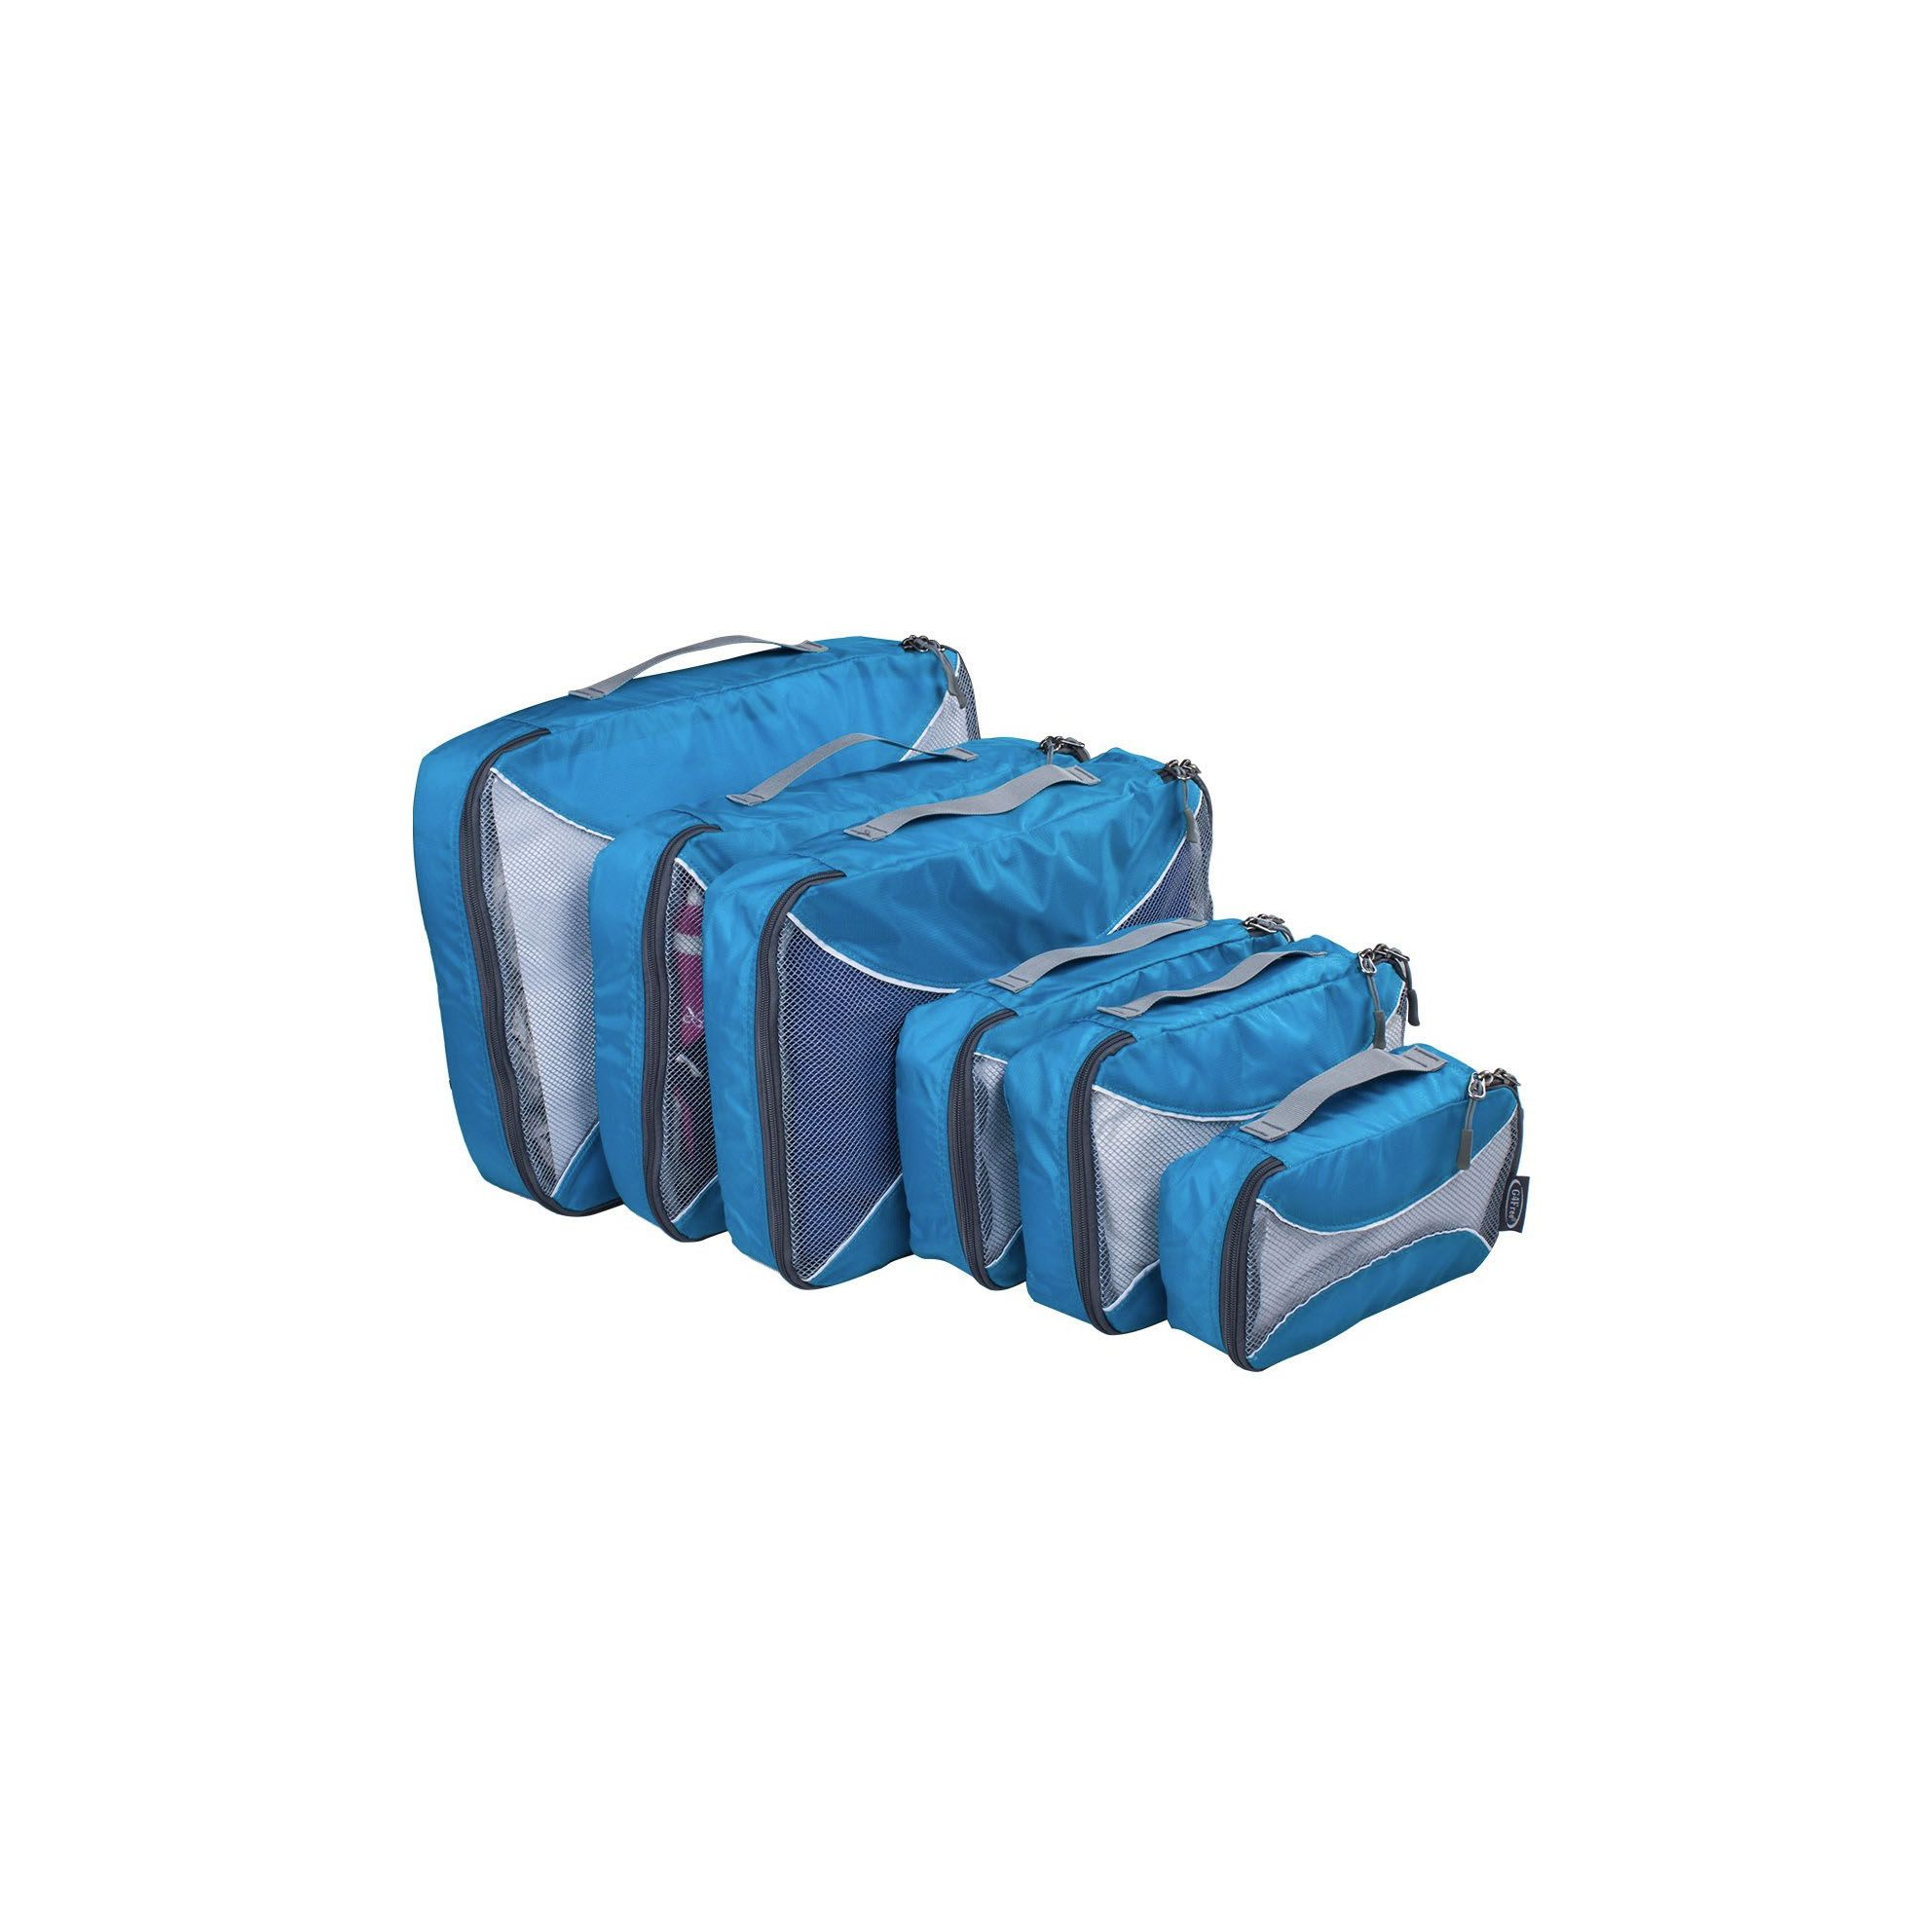 c6ac02142fc7 Packing cubes: 9 of the best to buy right now